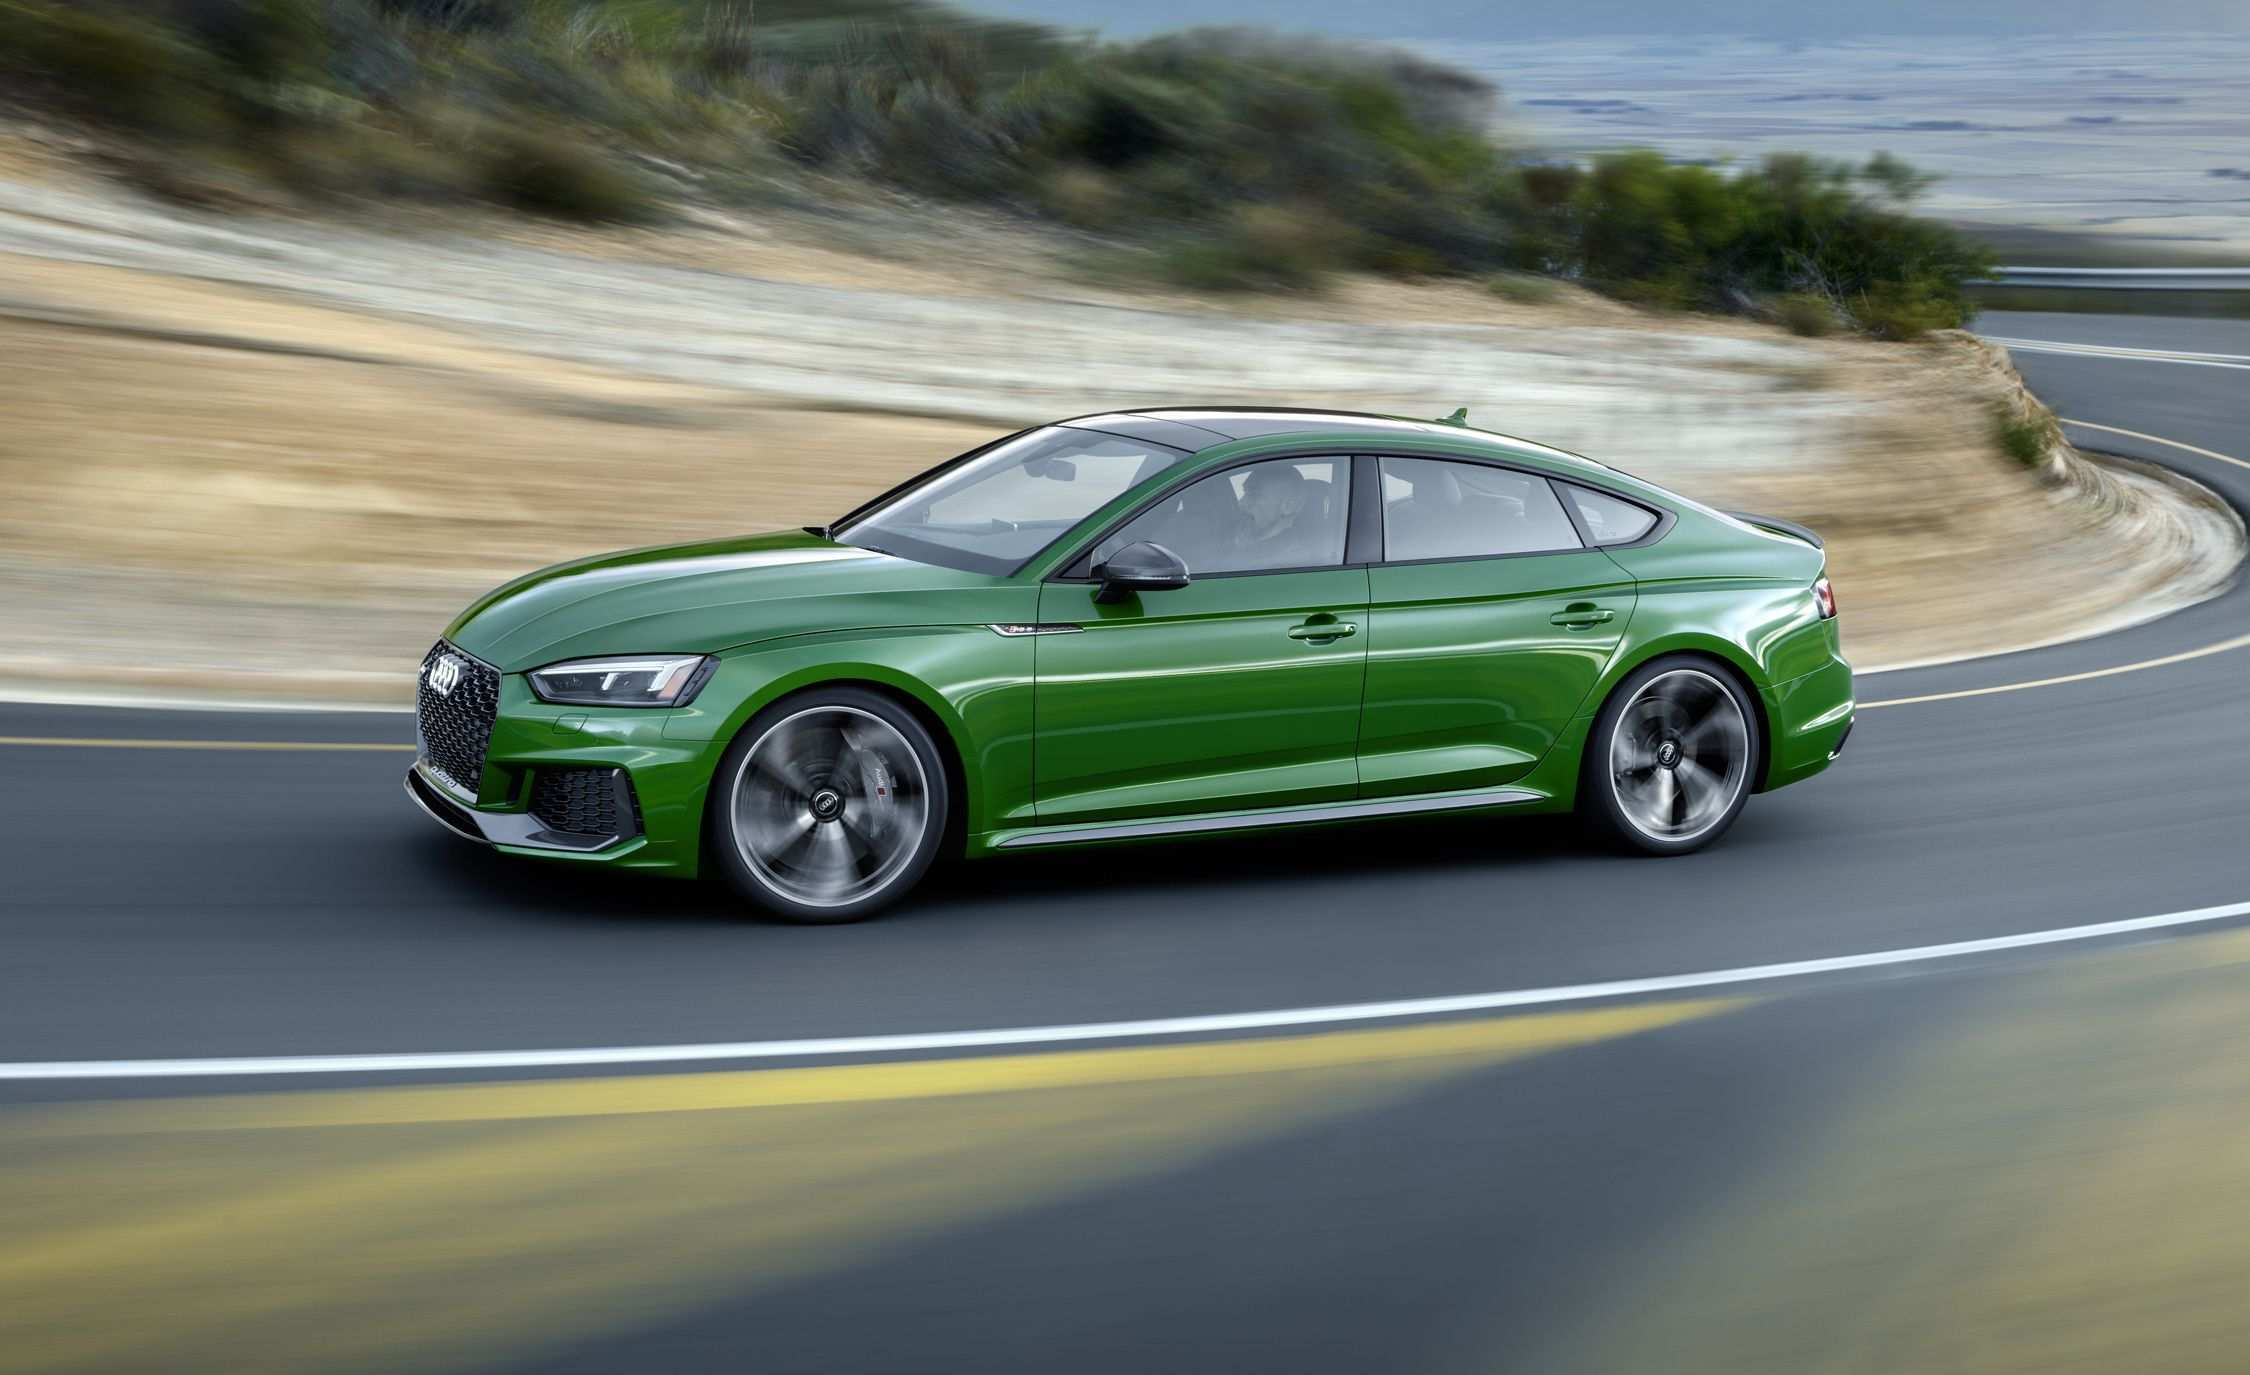 80 Best Review New 2019 Audi Rs5 Images for New 2019 Audi Rs5